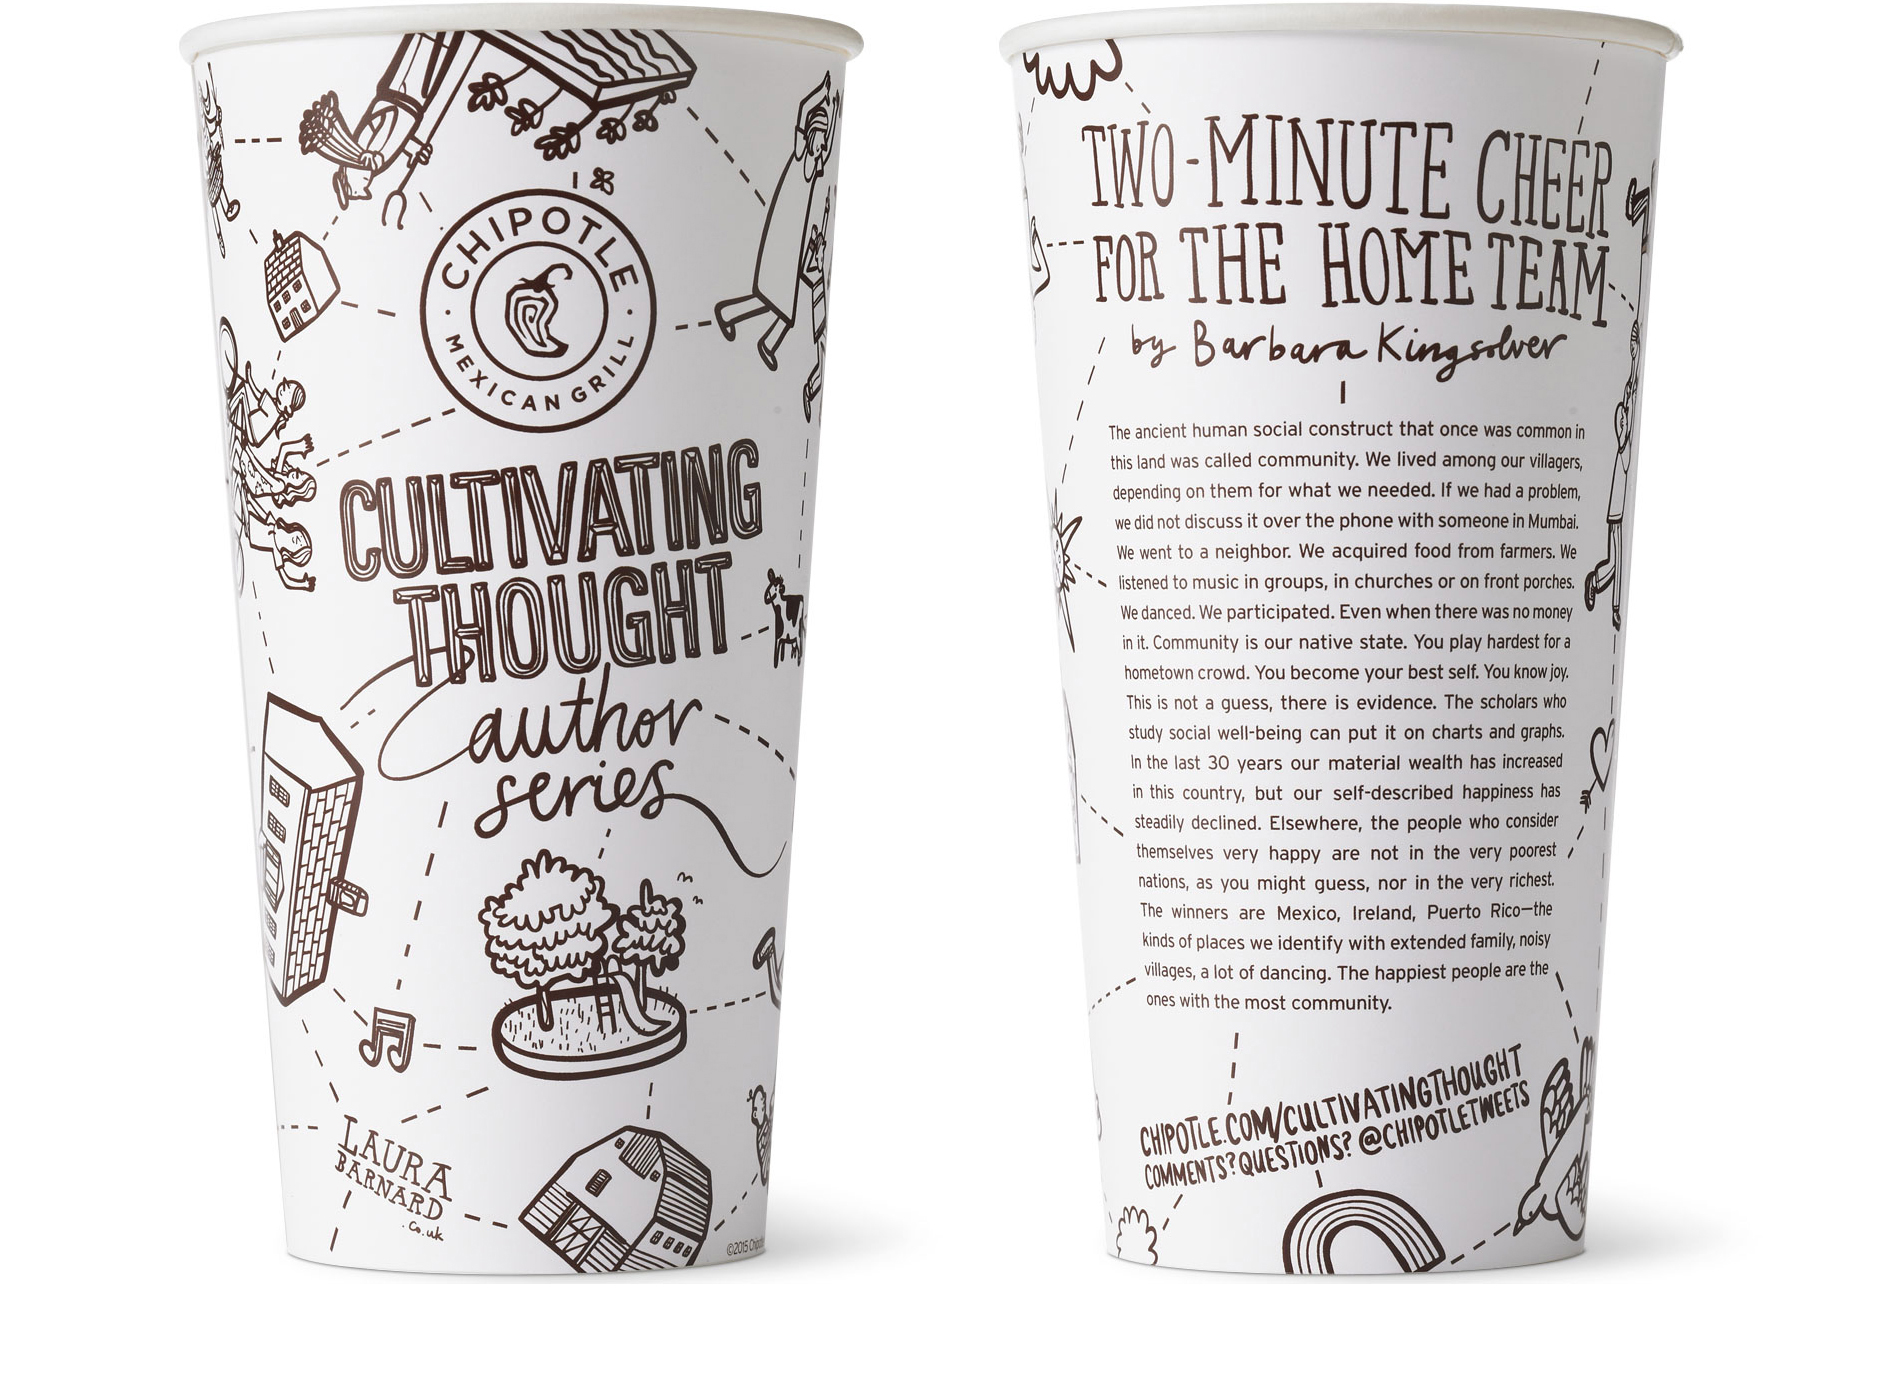 Chipotle Cup Cultivating Thought Cup 1